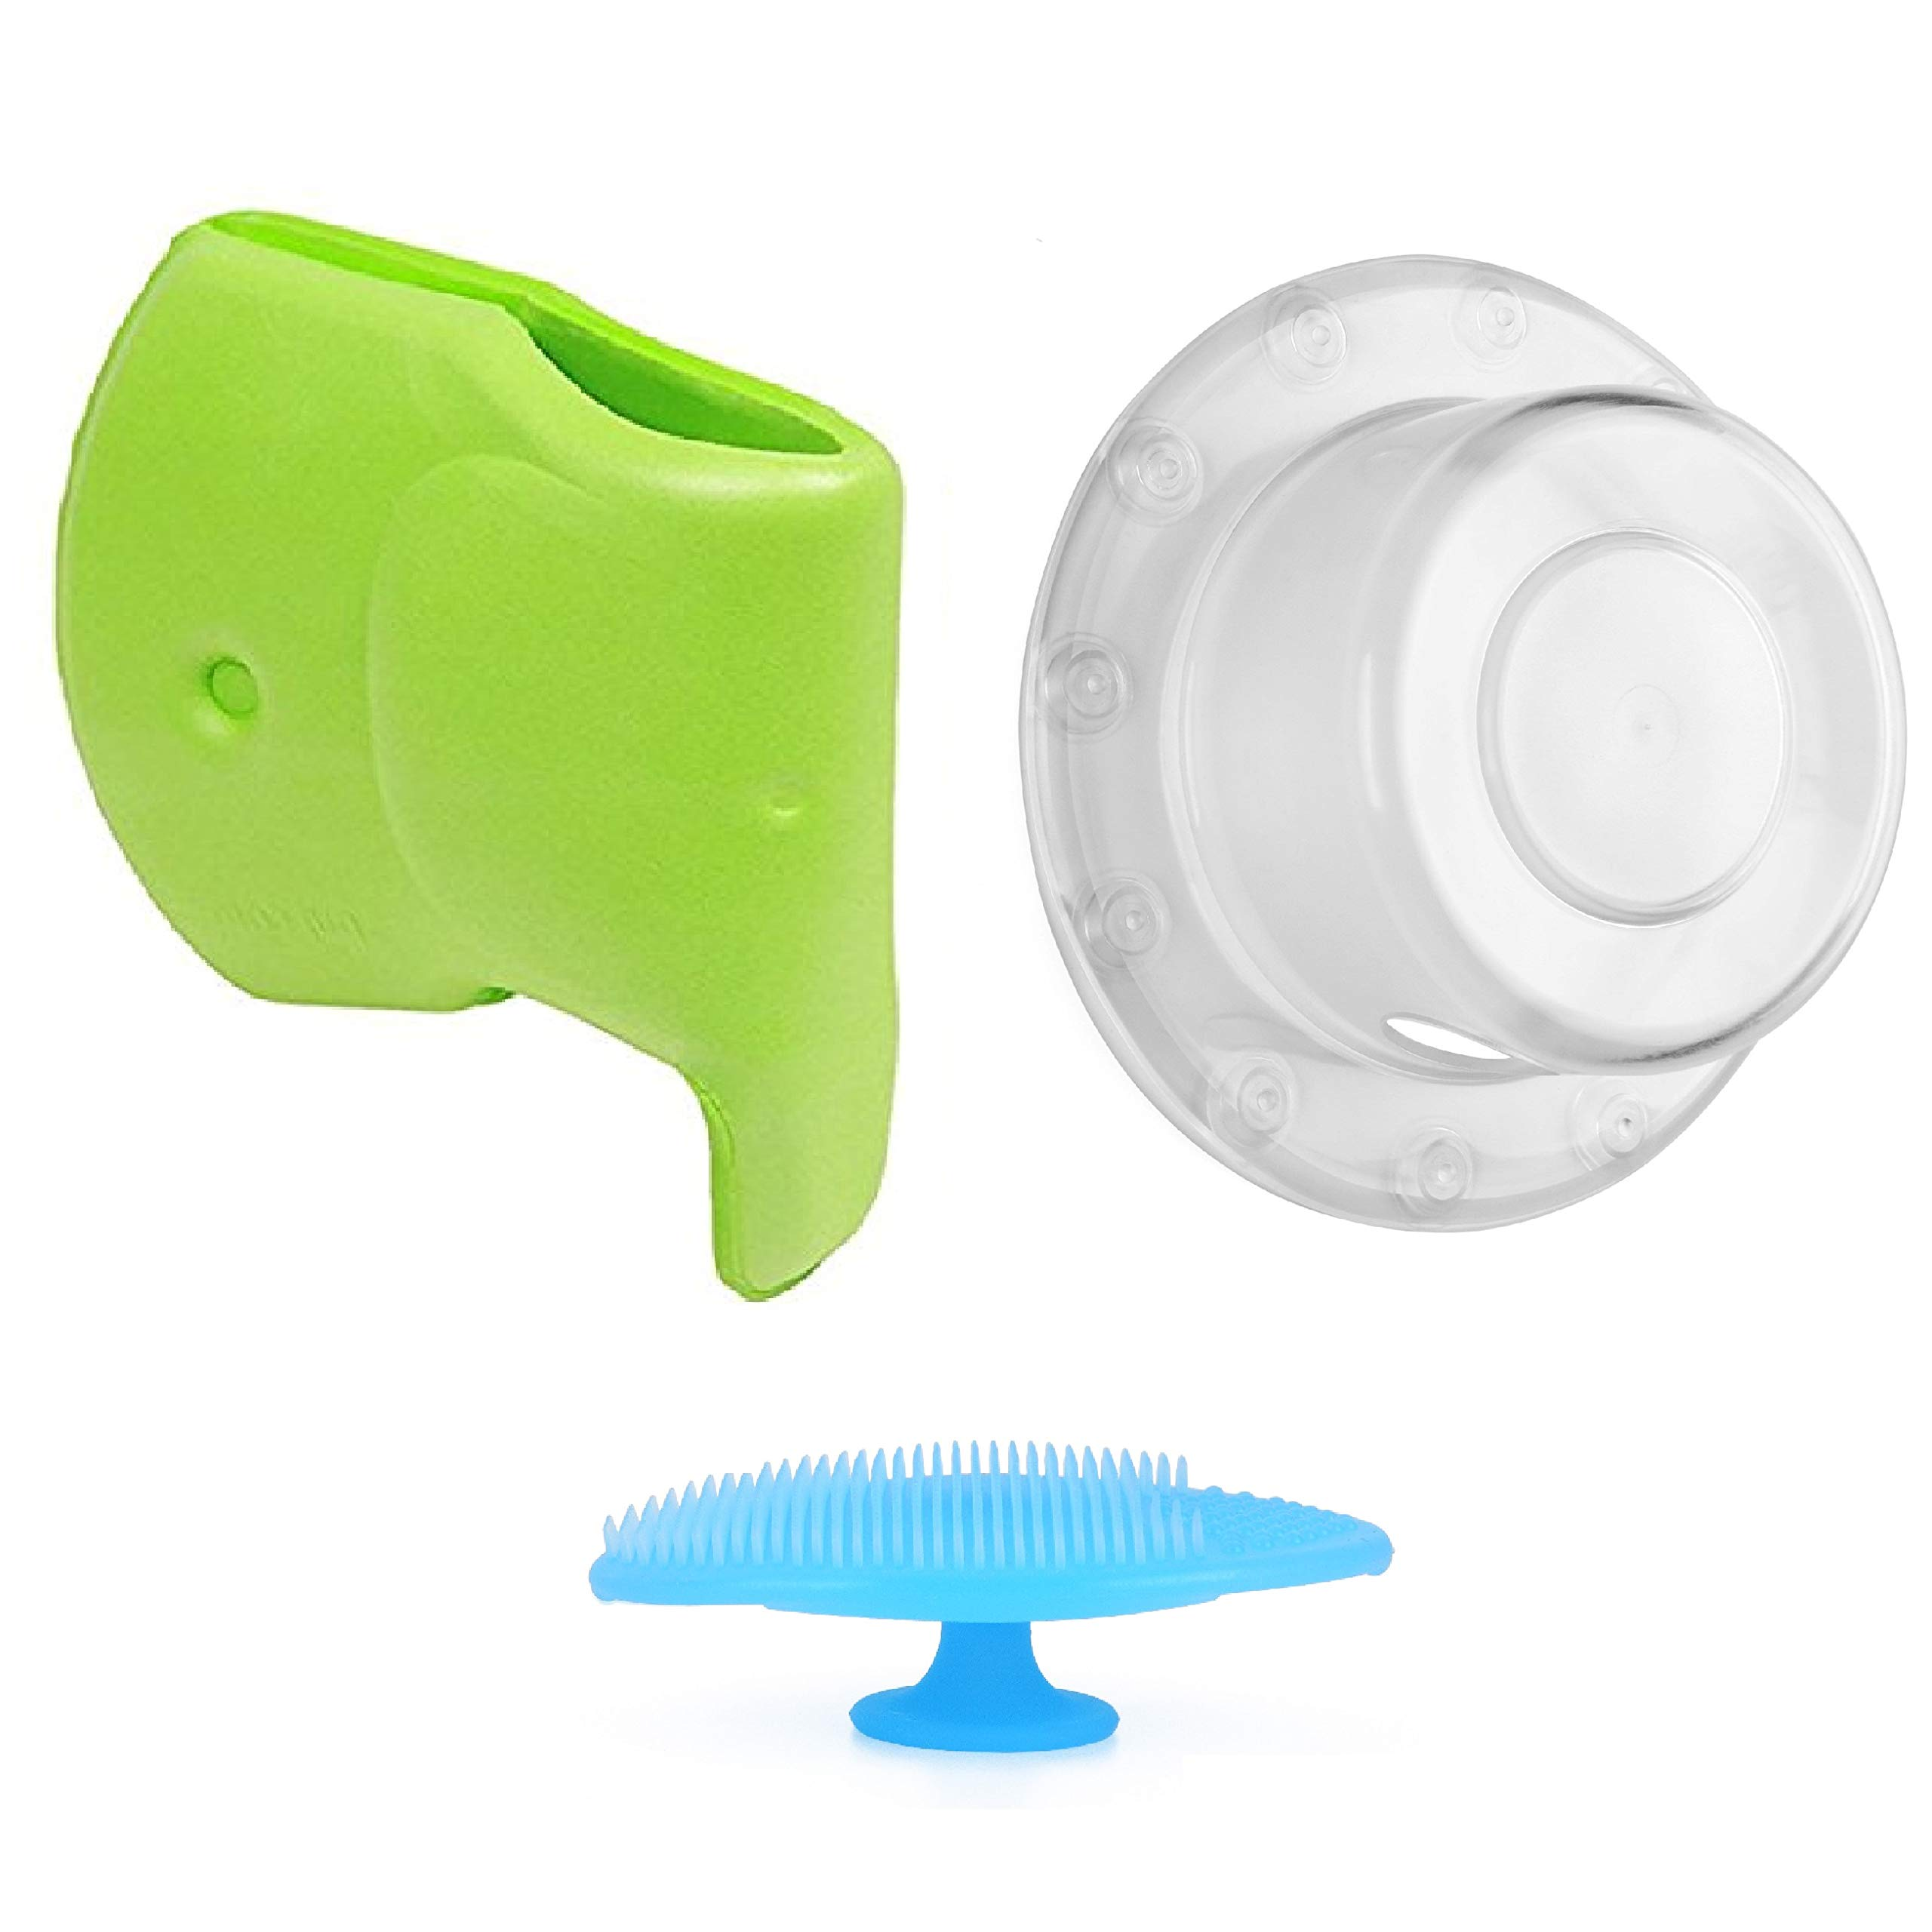 Zubree Baby Bath Safety Set: Bath Faucet Cover and Trip-Lever Cover, Plus Bonus Gift Silicone Baby Scrubber (3 Piece Set)